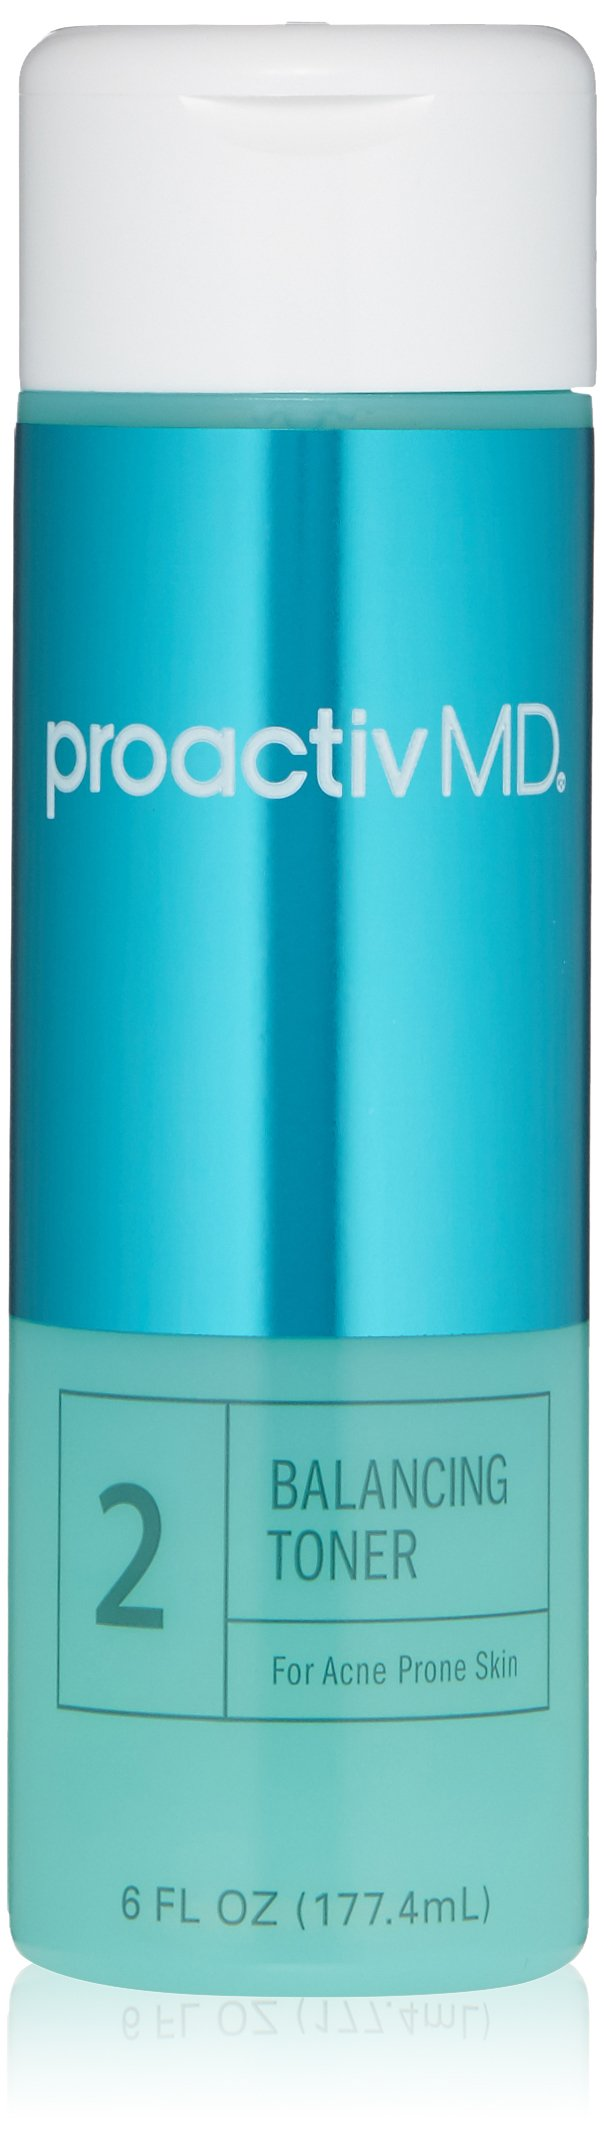 ProactivMD Balancing Toner, 6 Ounce by Proactiv